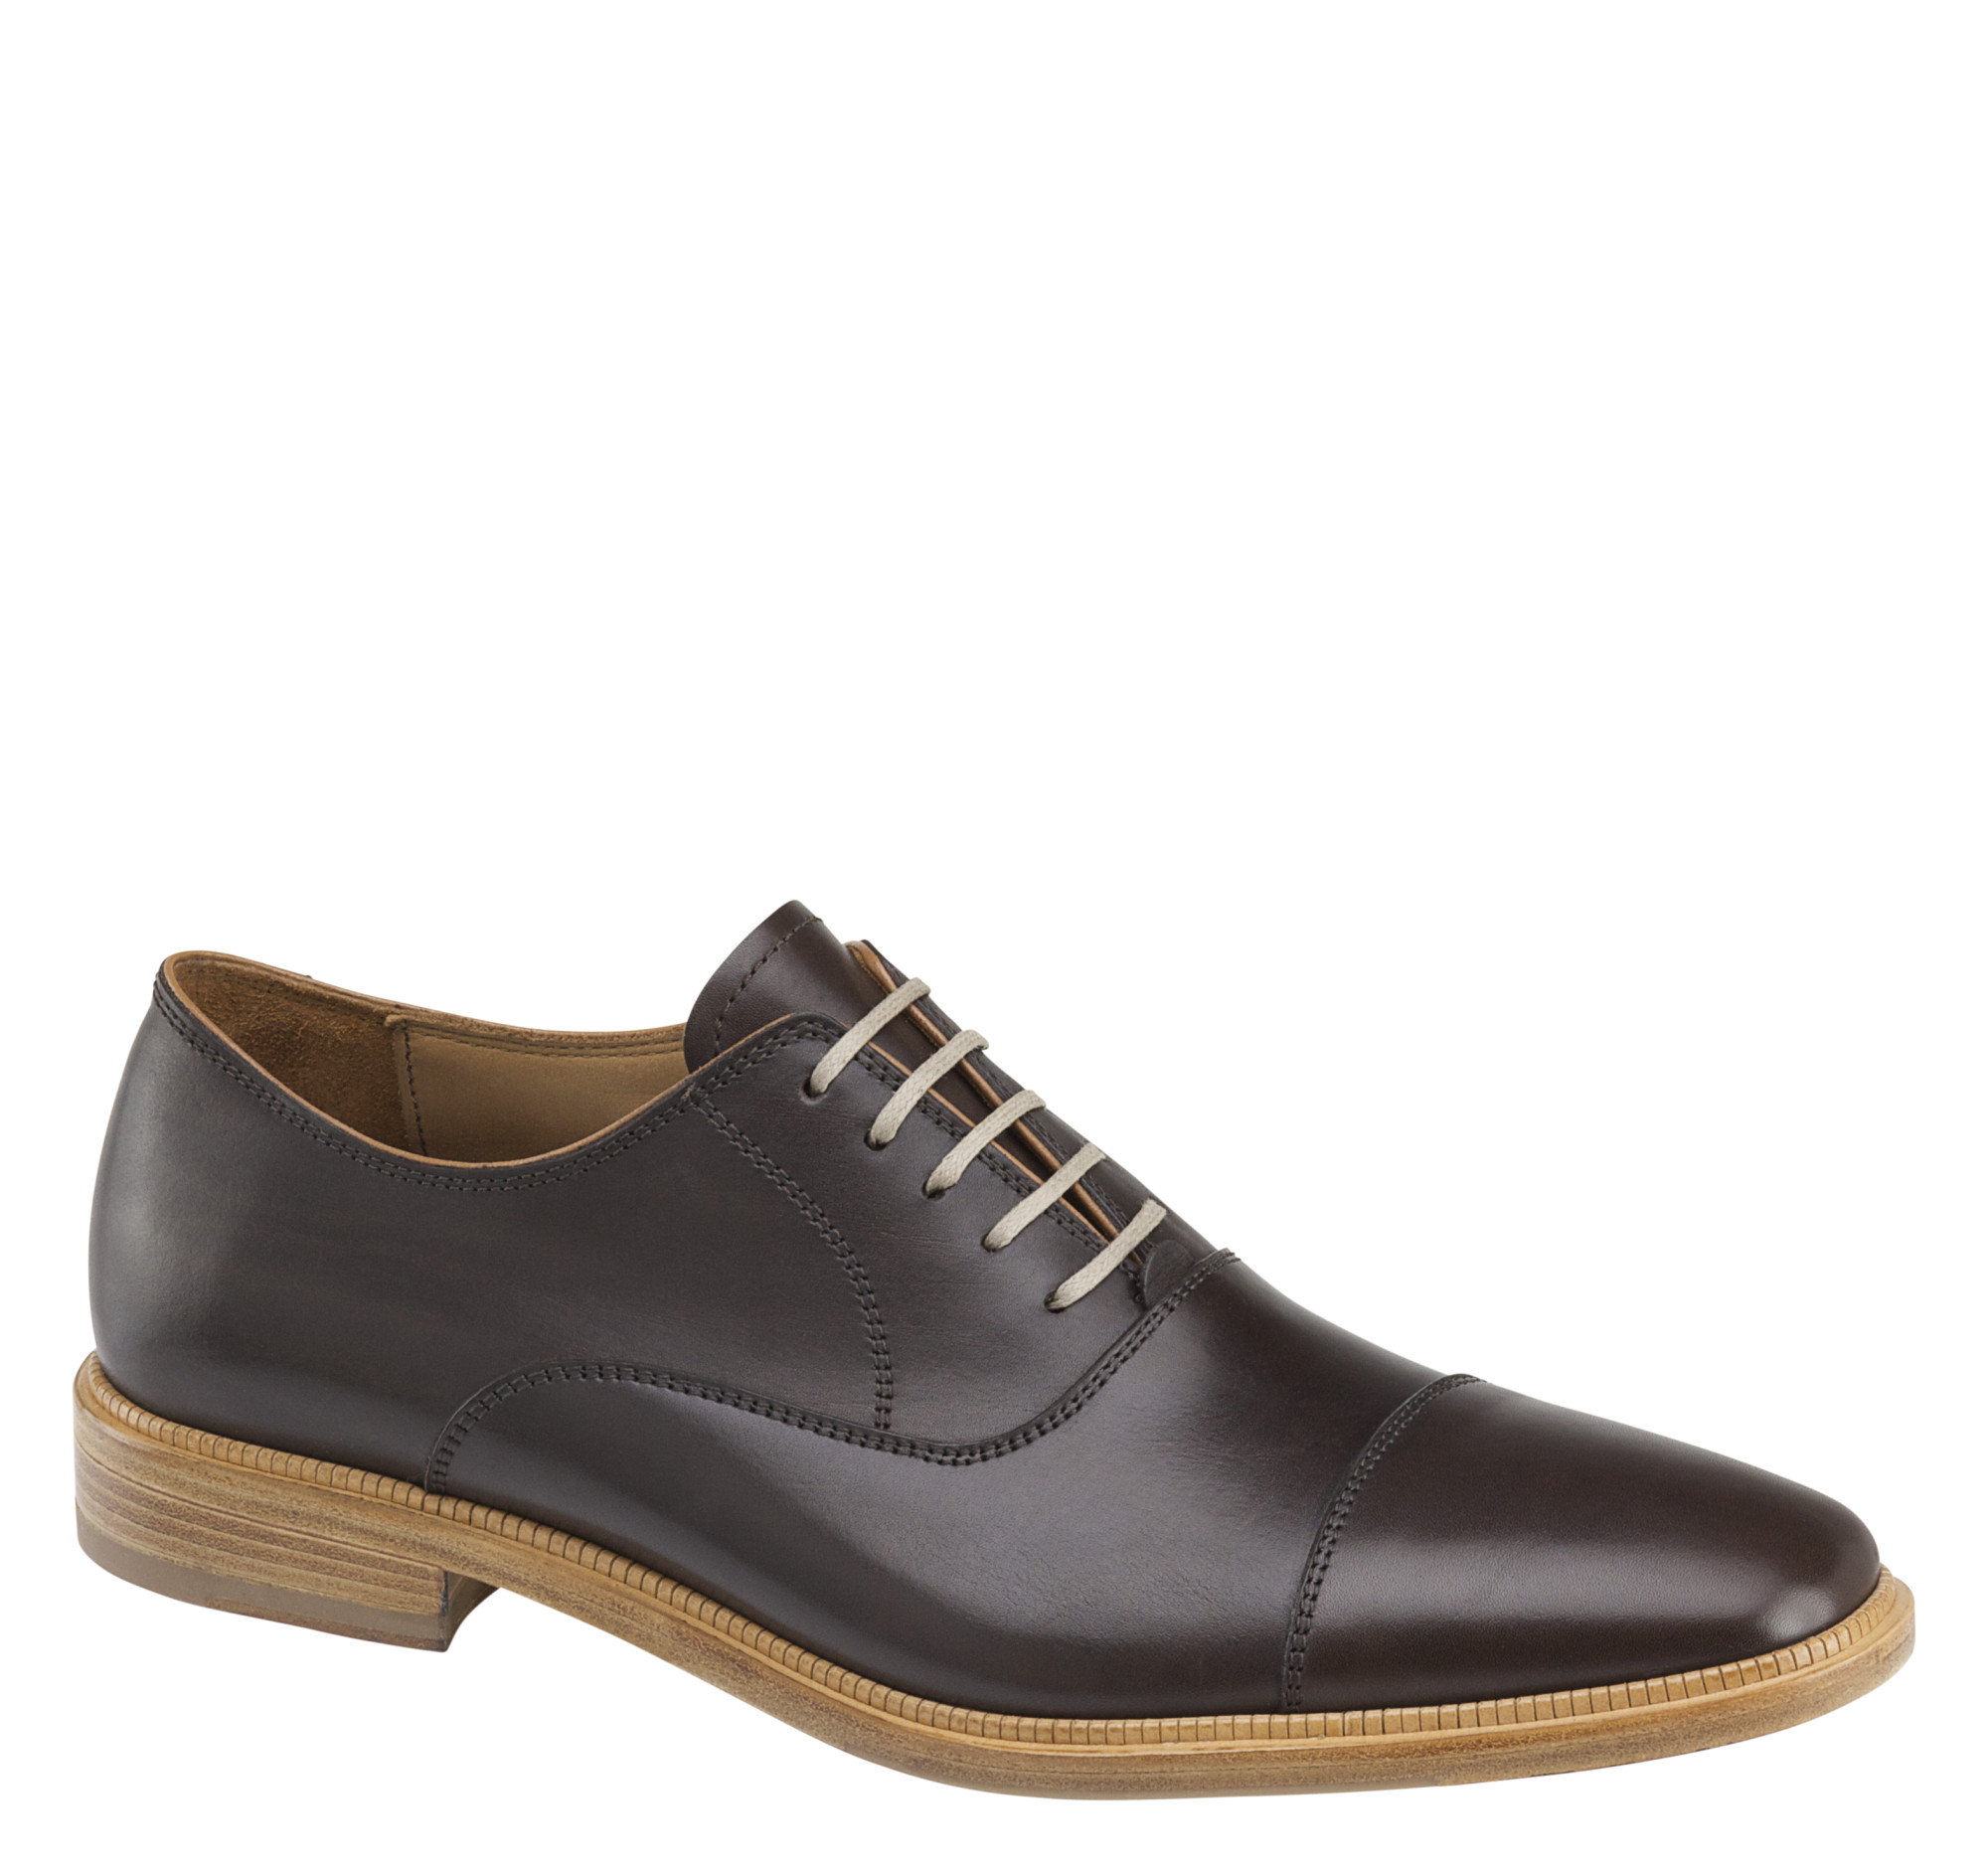 Johnston & Murphy Whitman Cap Toe Shoes